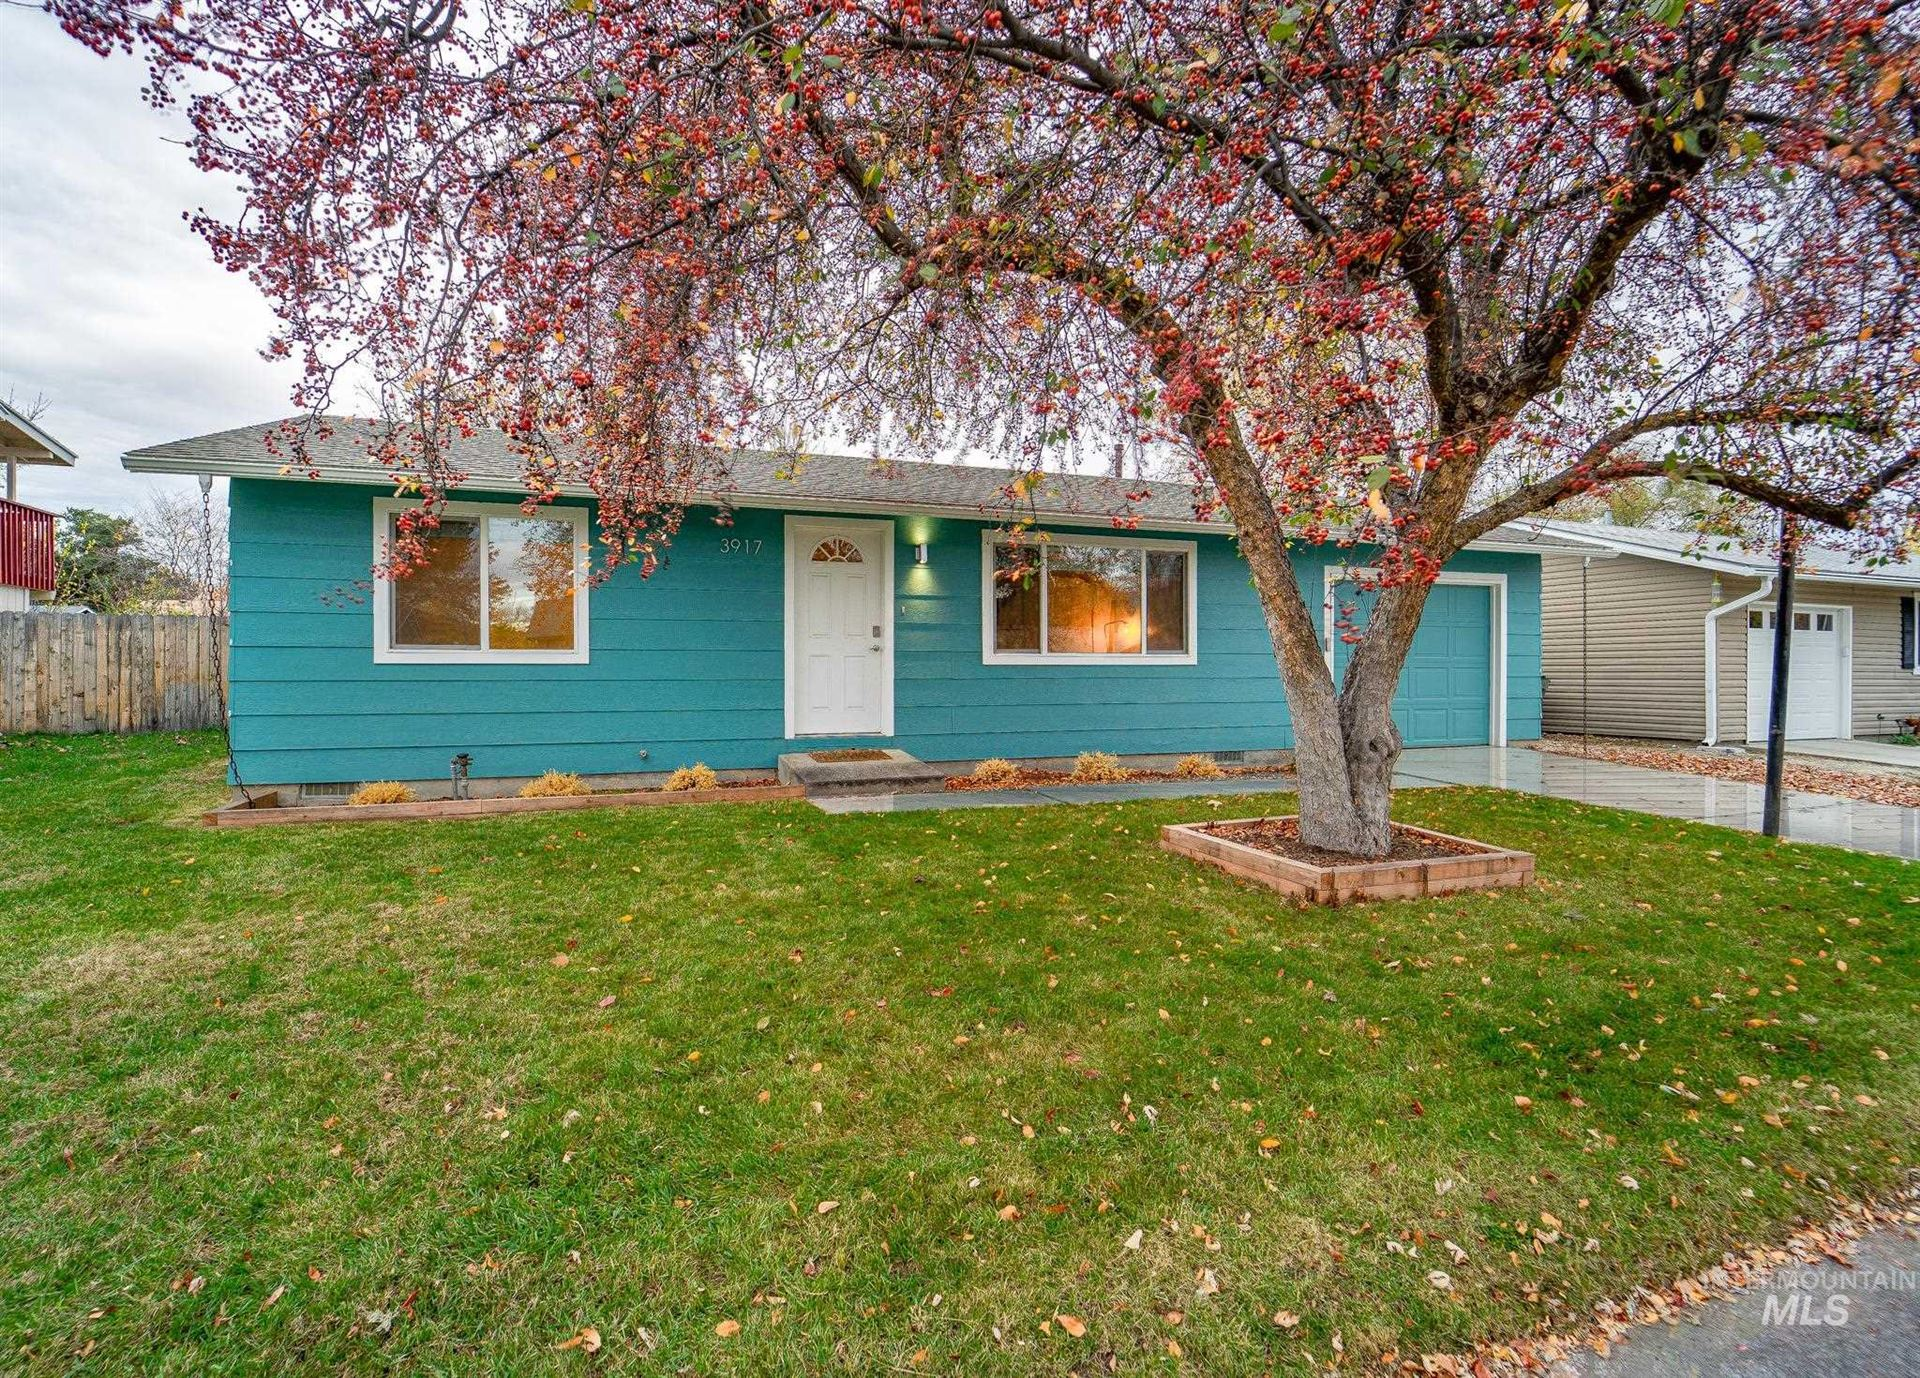 3917 S Valley Forge Ave, Boise, ID 83706 - MLS#: 98822901